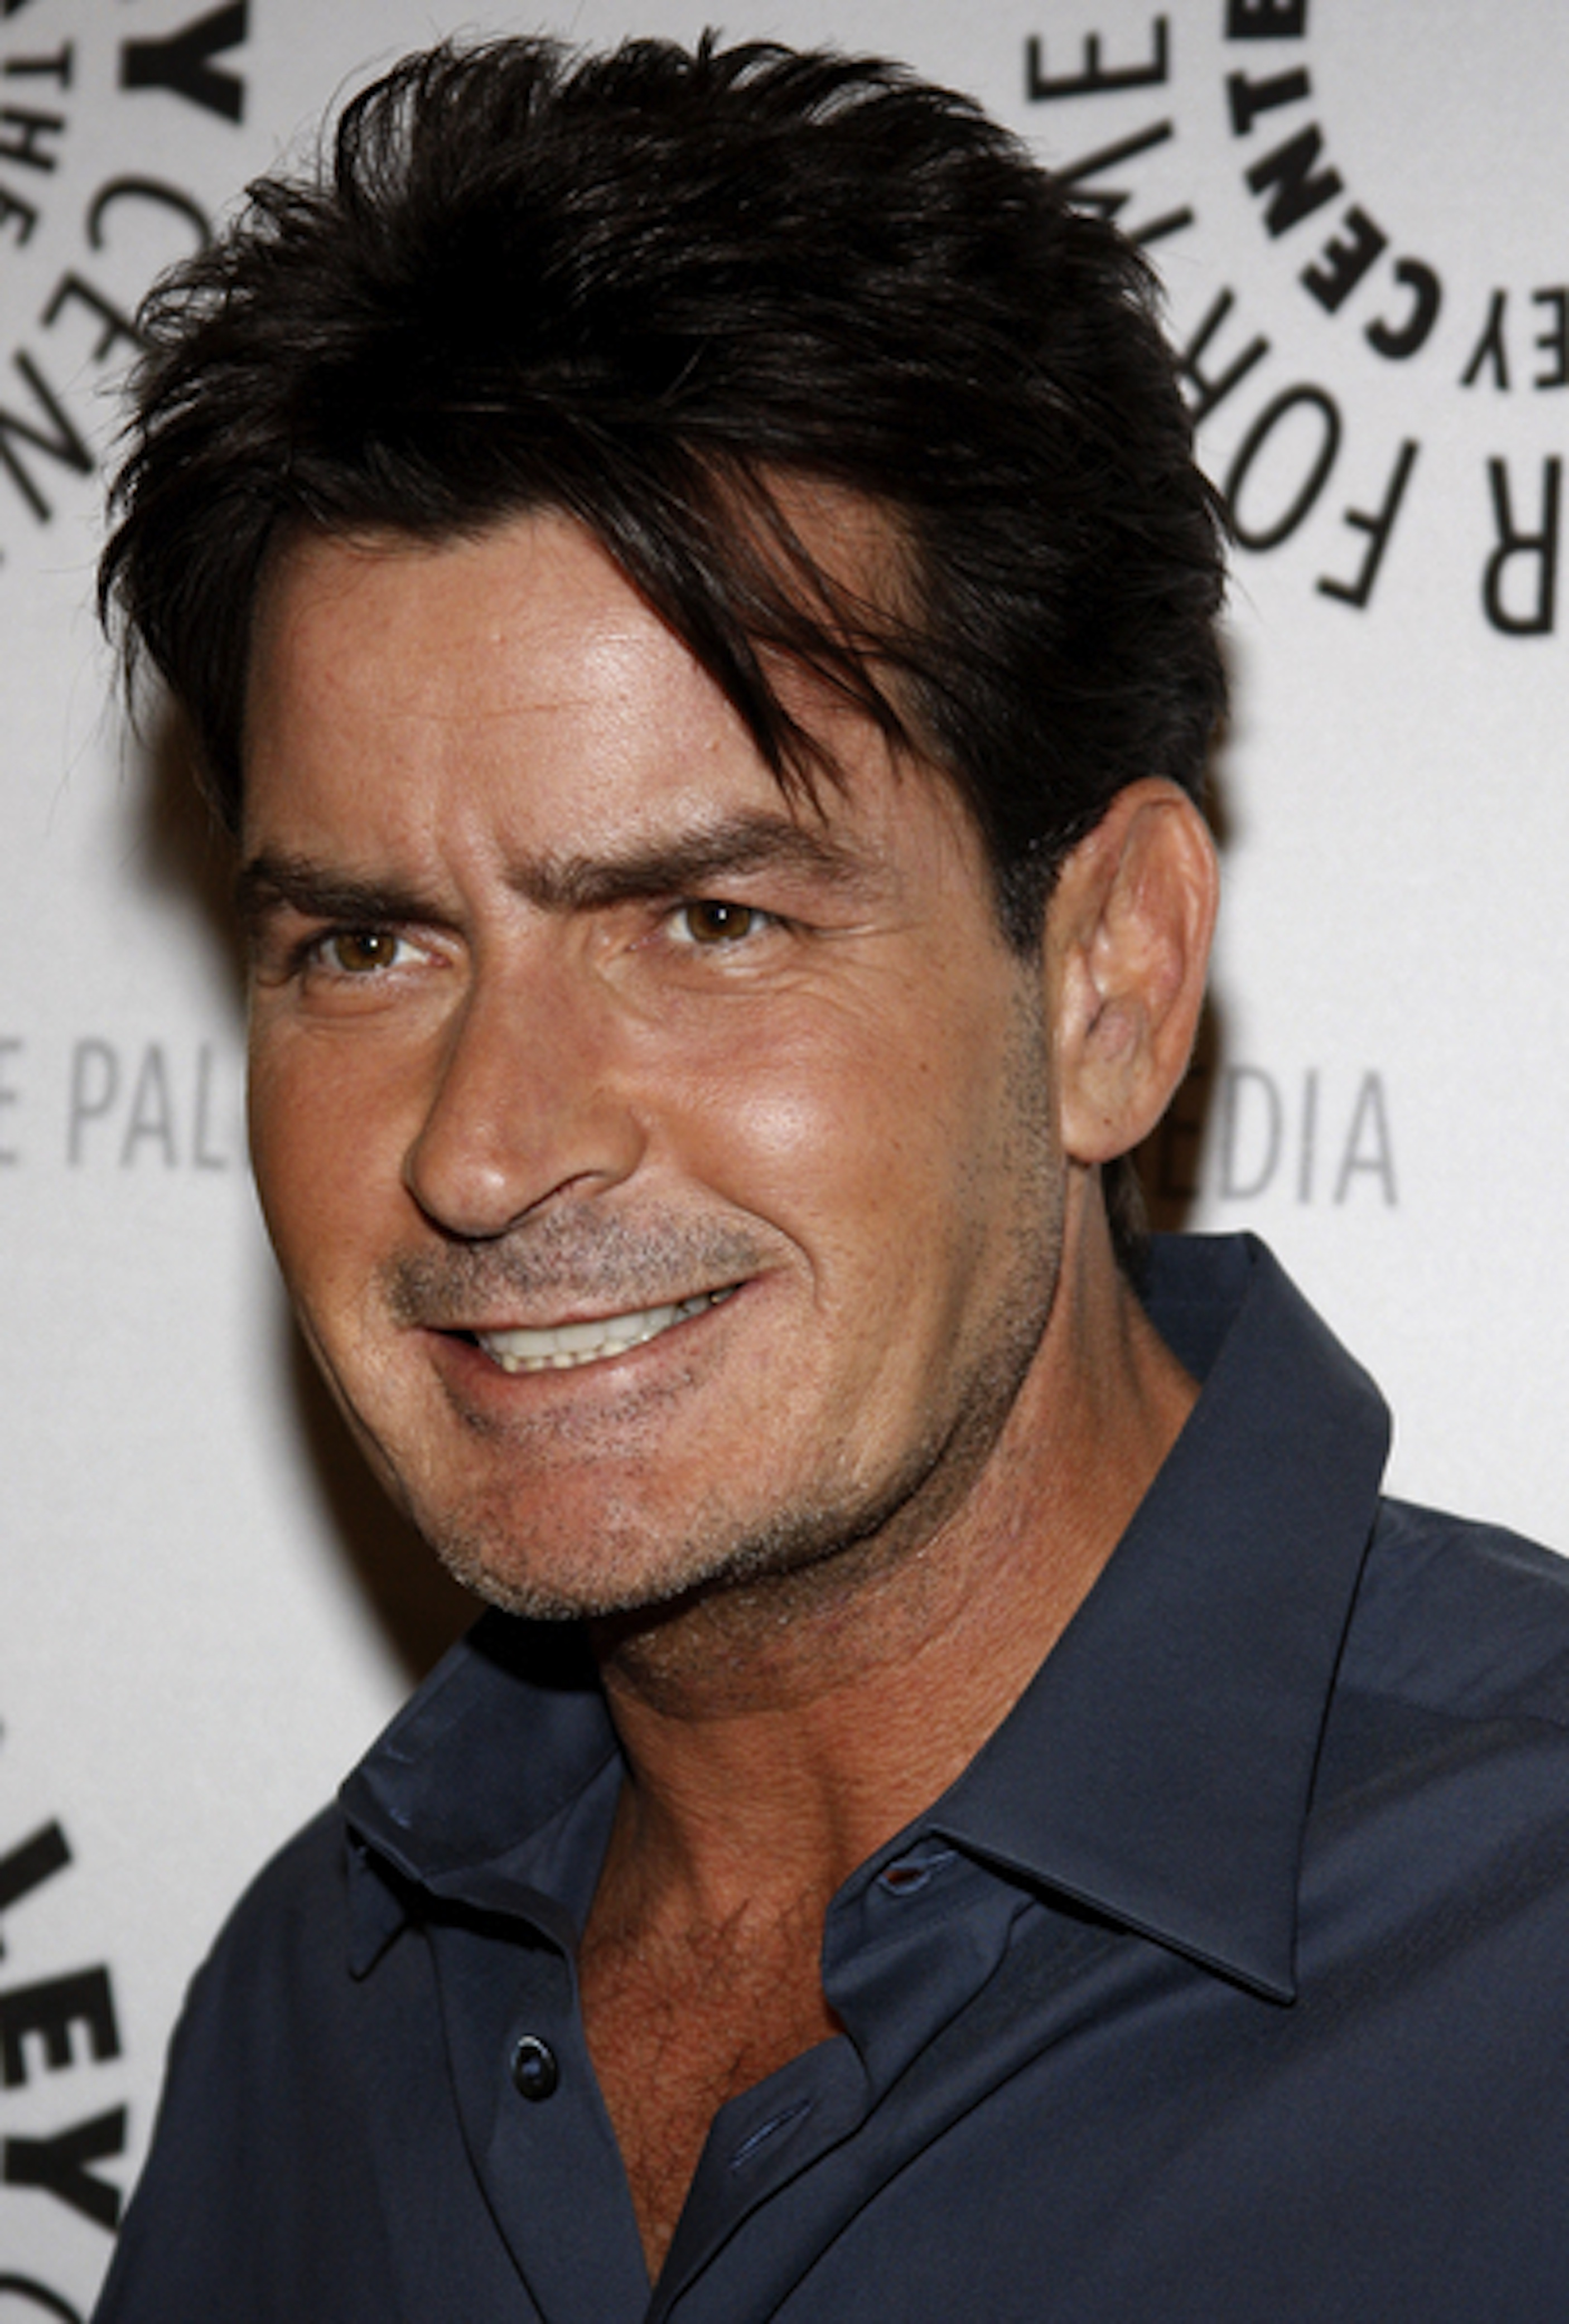 Buon Compleanno Charlie Sheen